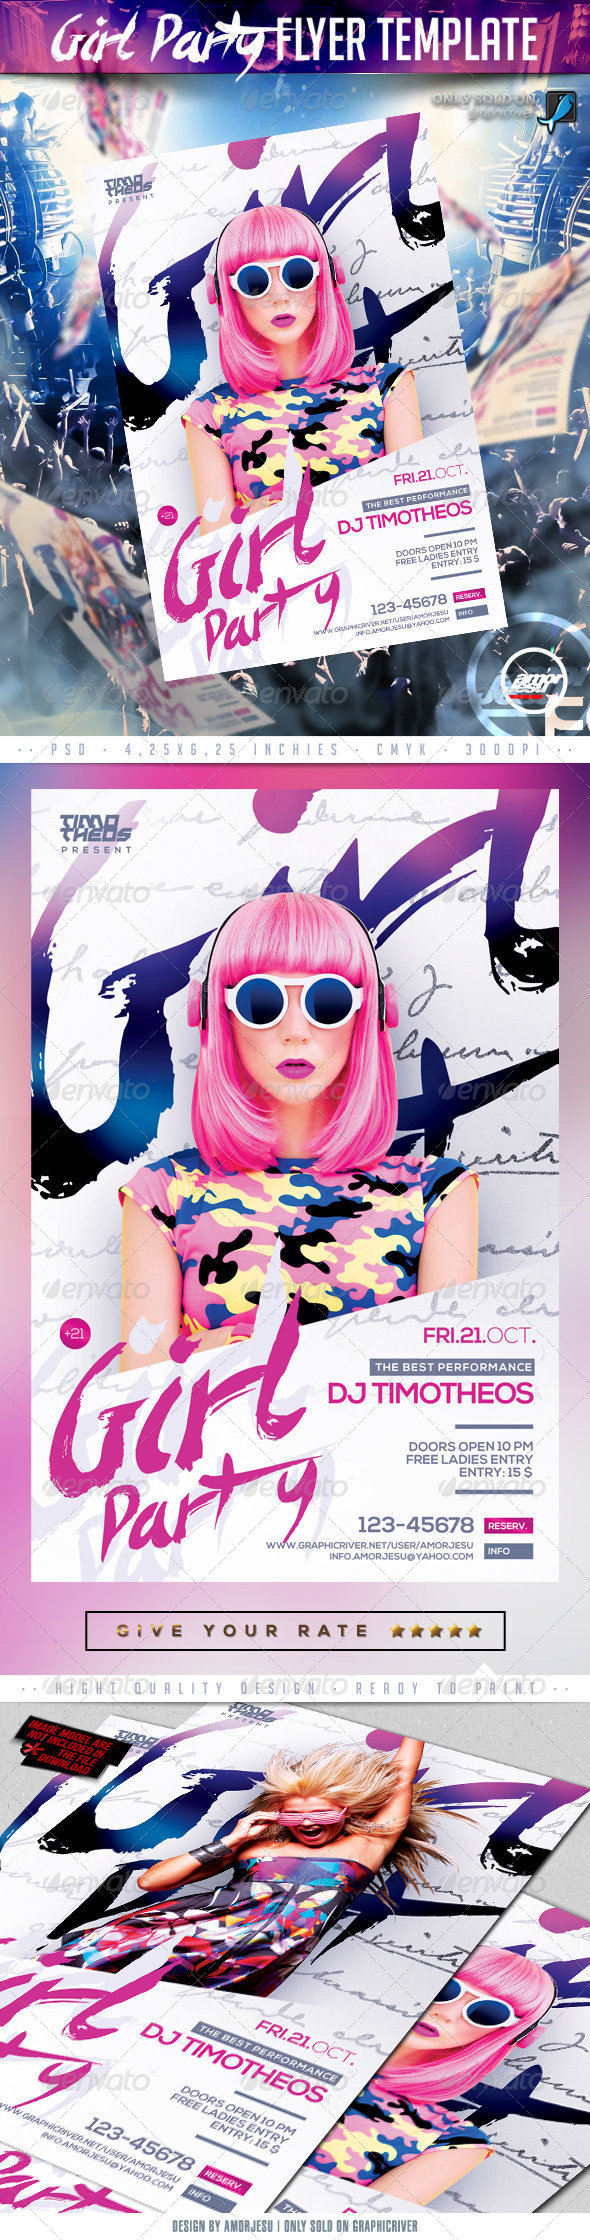 Girl Party Flyer Template - Clubs & Parties Events